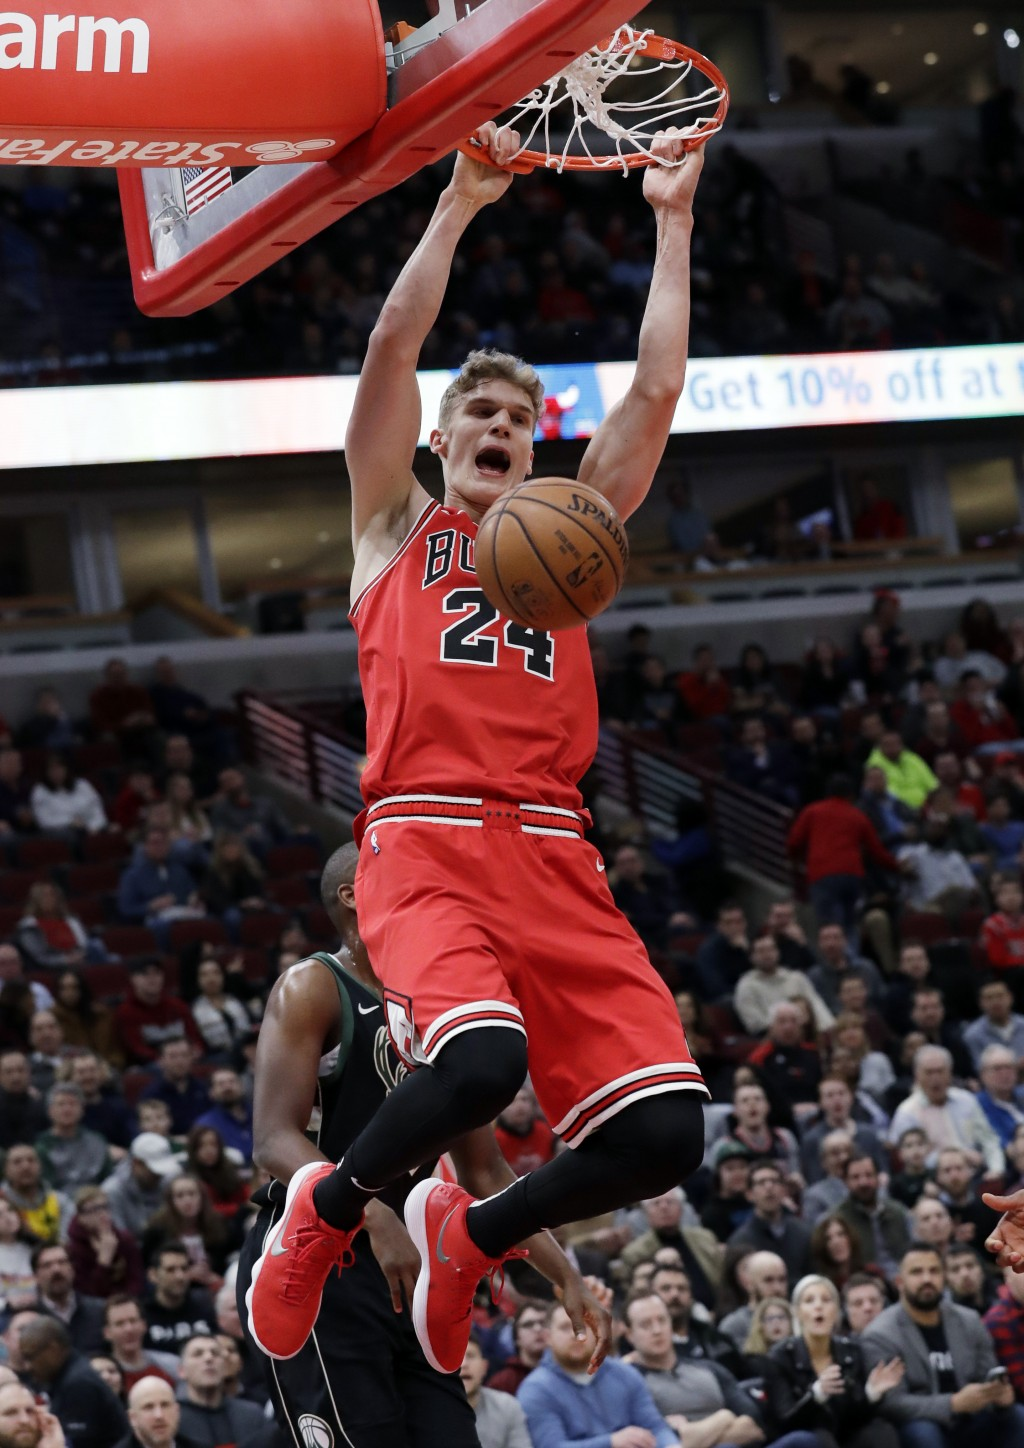 Chicago Bulls forward Lauri Markkanen reacts as he dunks against the Milwaukee Bucks during the first half of an NBA basketball game Monday, Feb. 11, ...